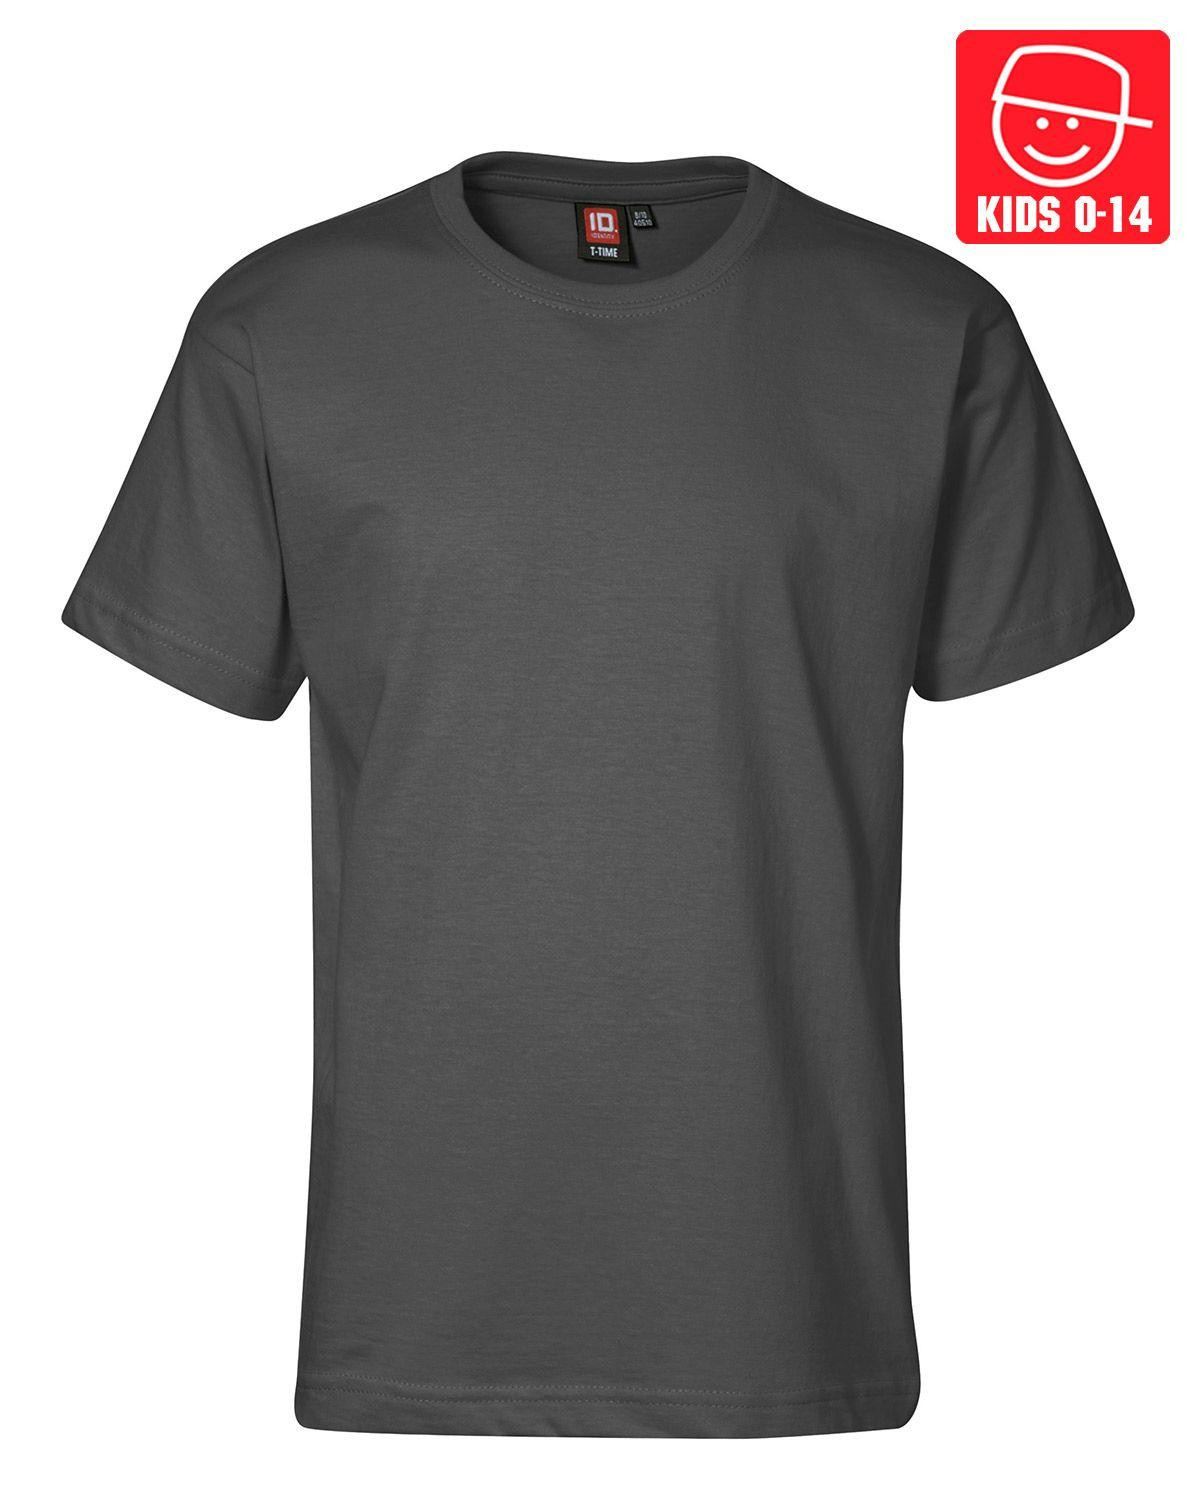 Image of   ID T-TIME T-shirt (Charcoal, K122)